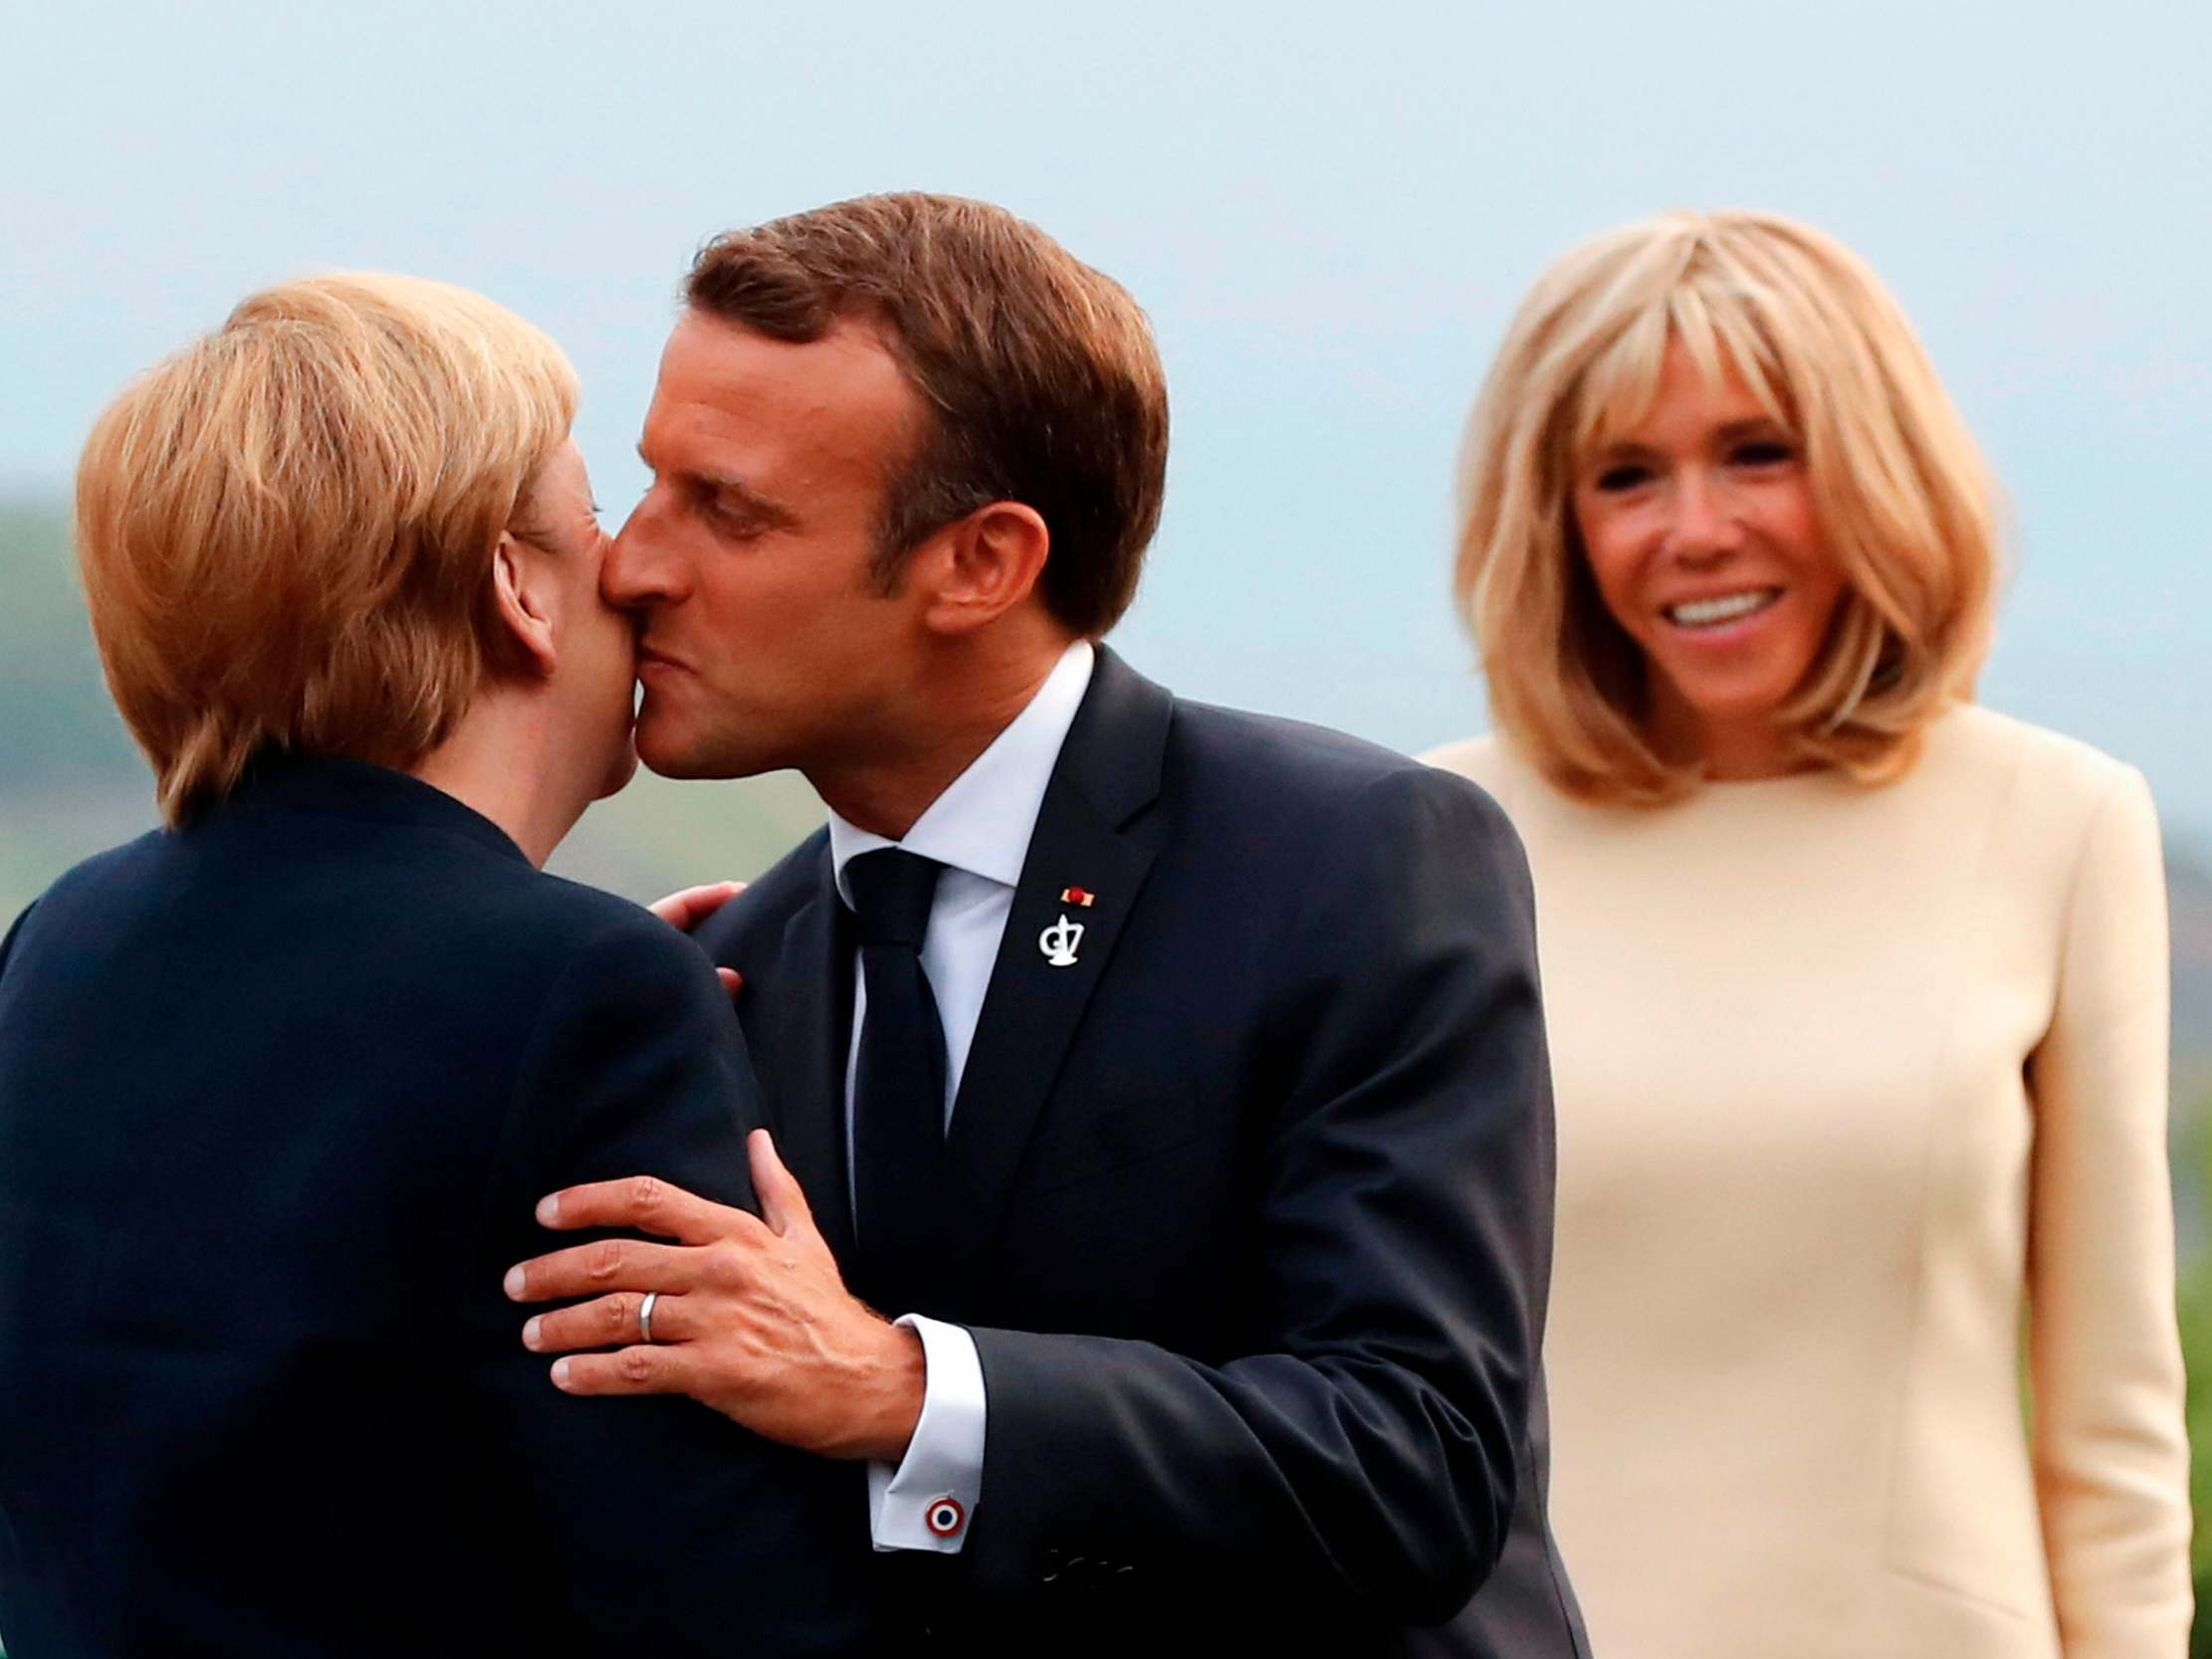 Macron Bolsonaro Clash Feud Escalates As Brazil President Mocks French First Lady S Looks The Independent The Independent